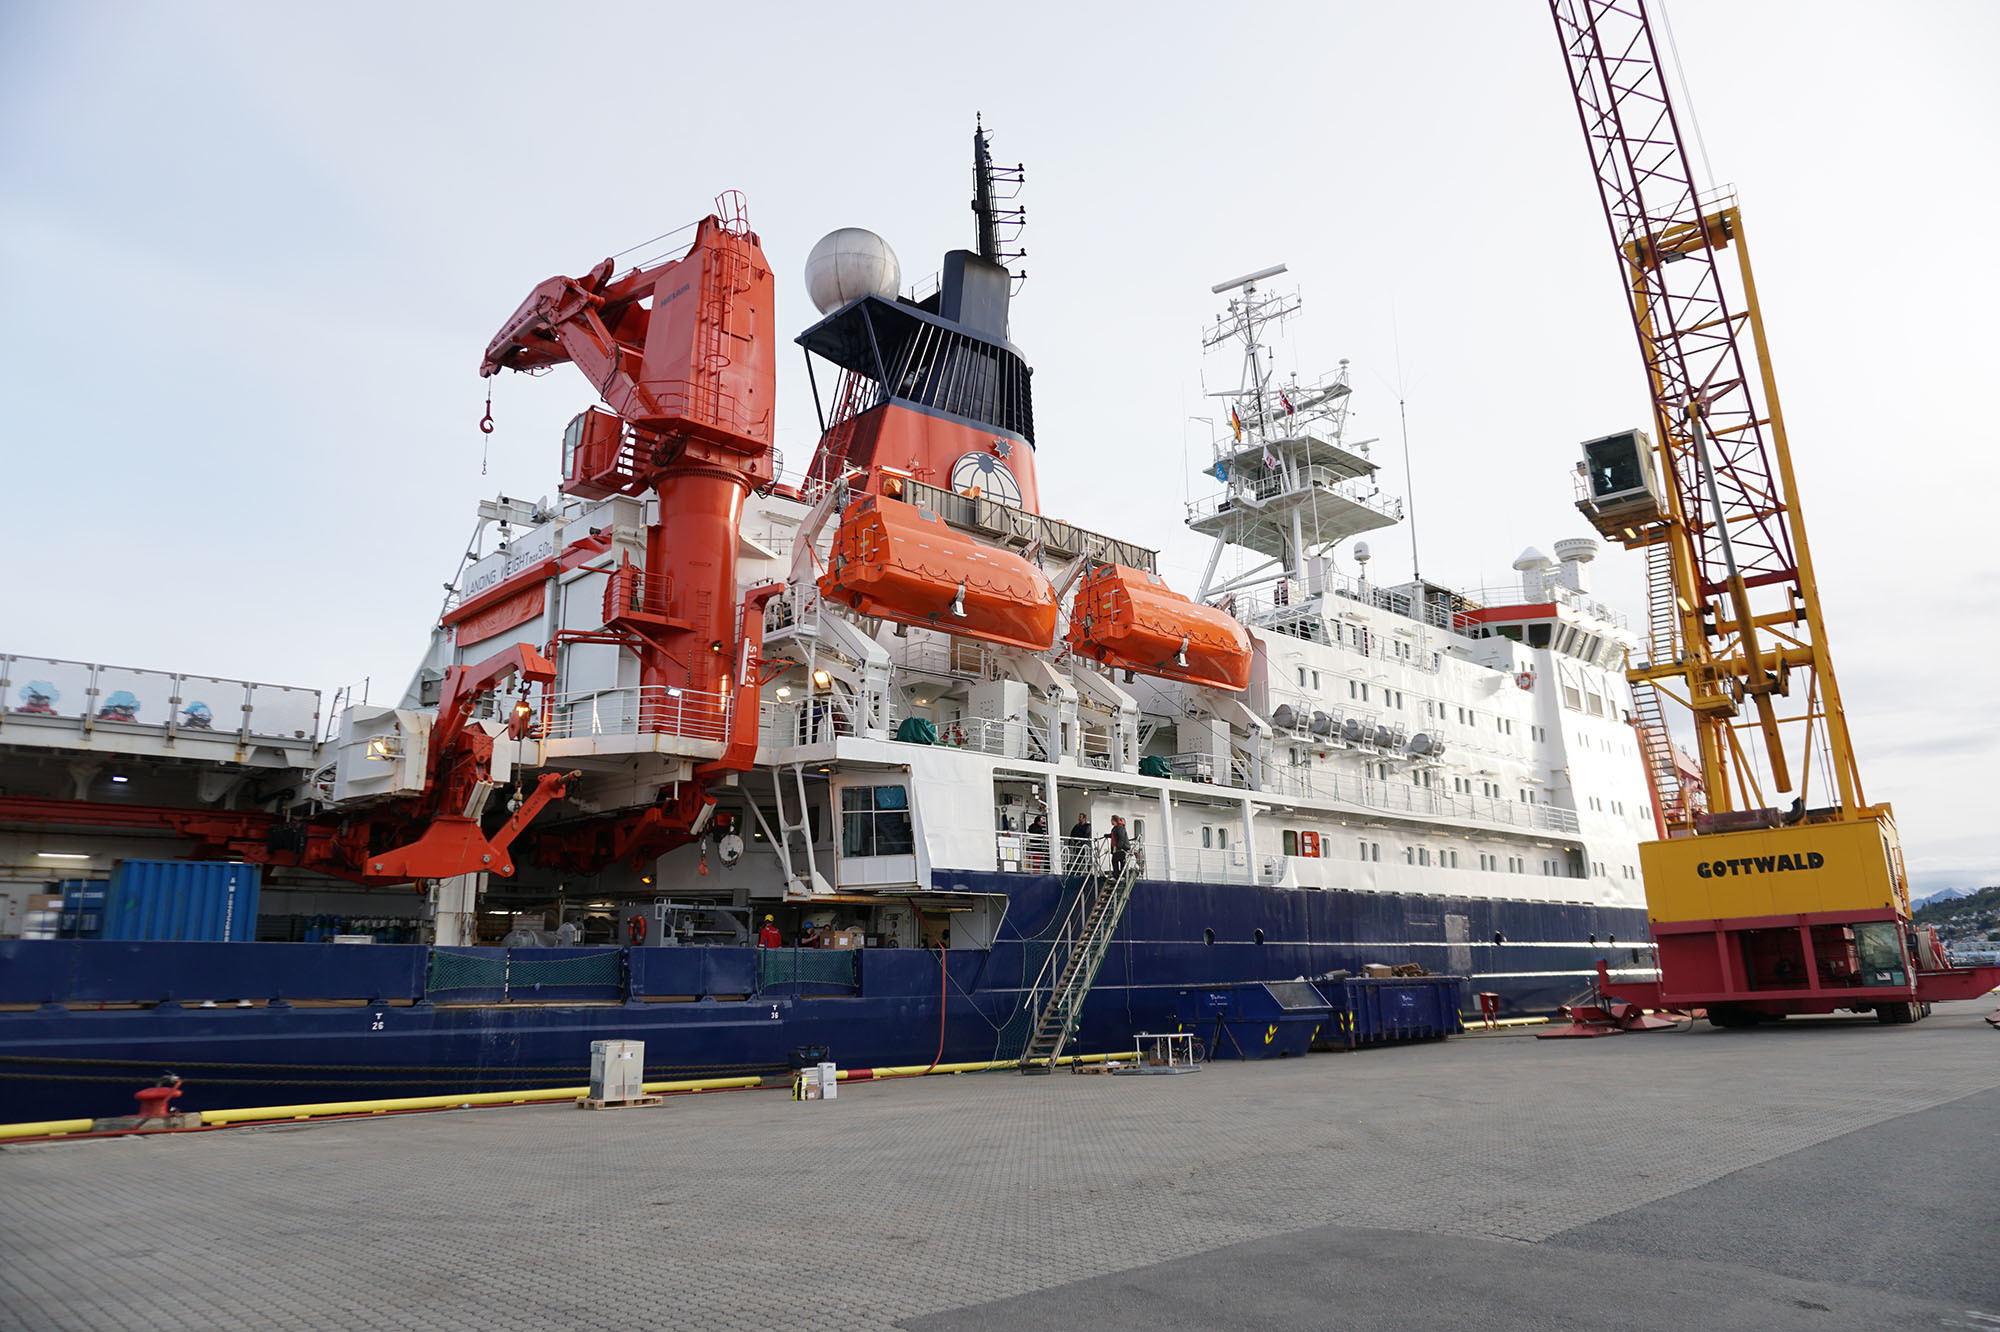 To Better Understand The Arctic, This Ship Will Spend A Year Frozen Into The Ice